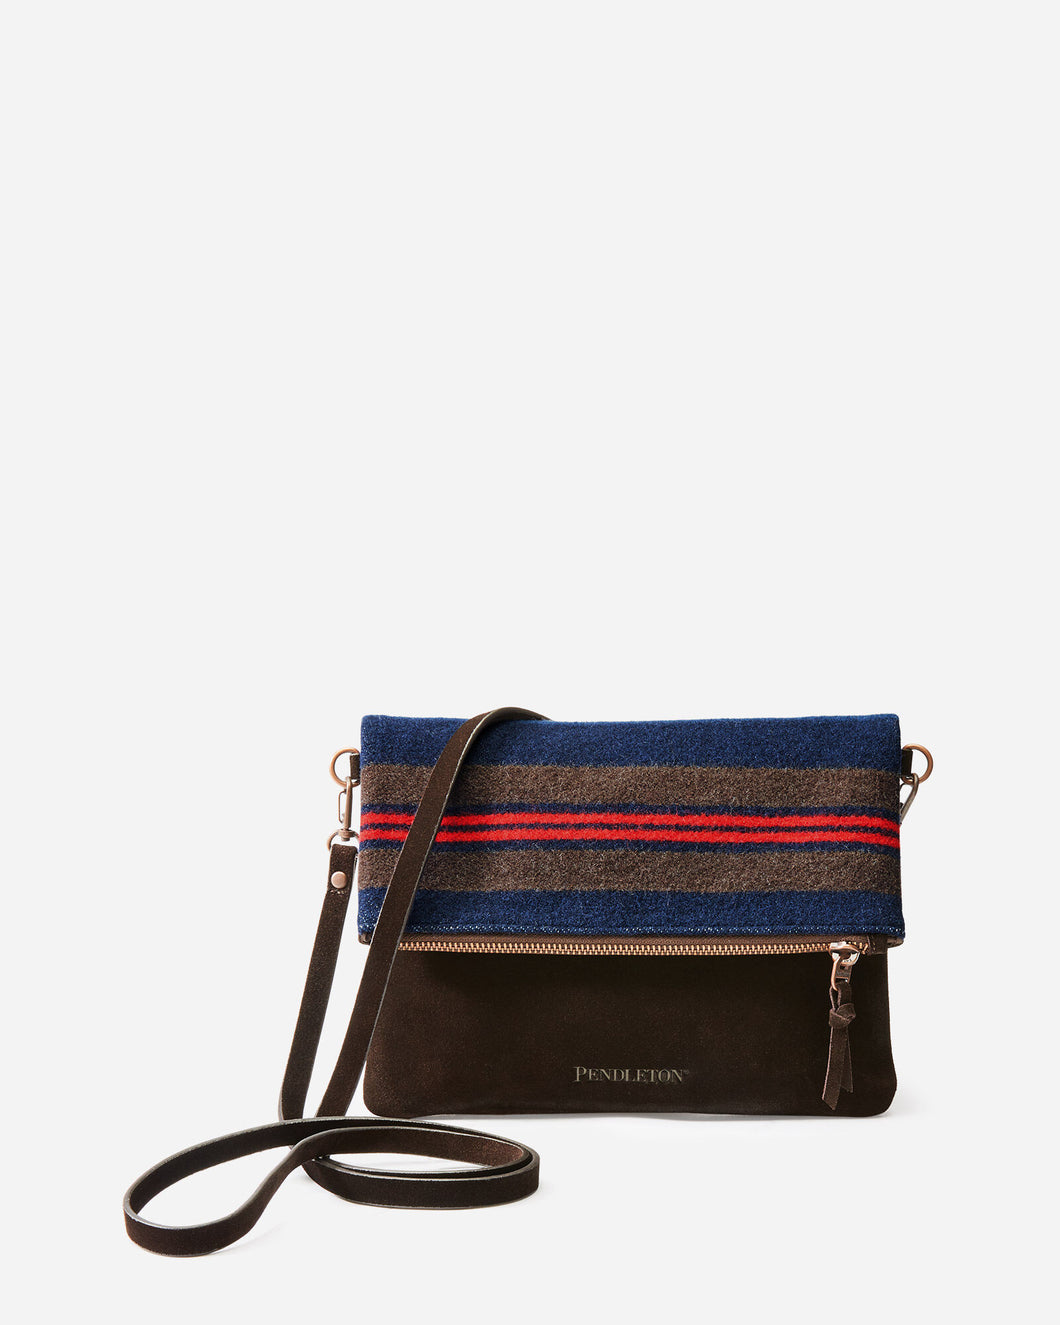 Pendleton woolen mills shelter bay foldover clutch crossbody bag purse wool olive green brown leather travel front